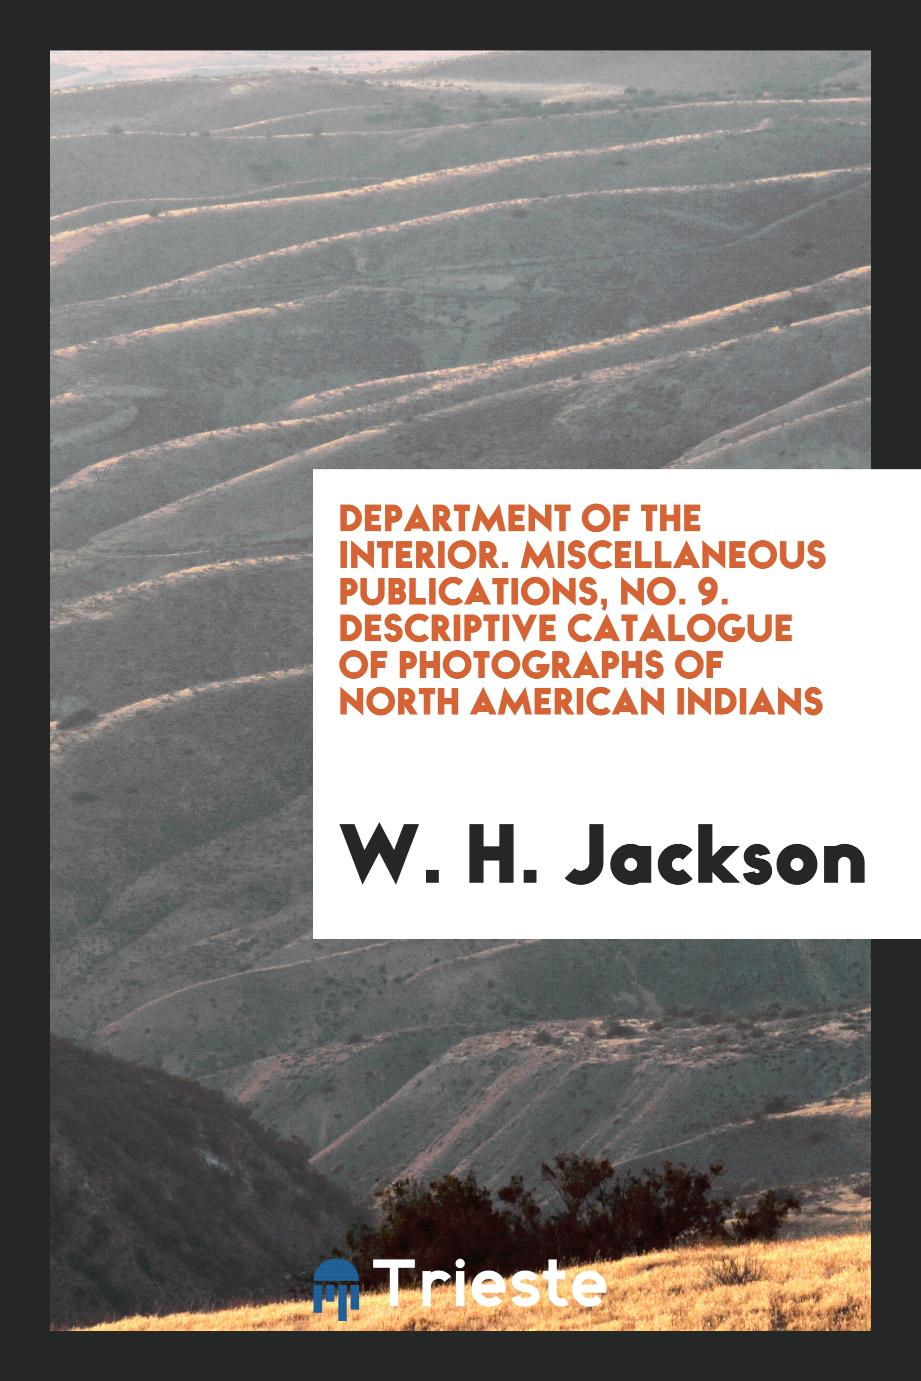 Department of the Interior. Miscellaneous Publications, No. 9. Descriptive Catalogue of Photographs of North American Indians